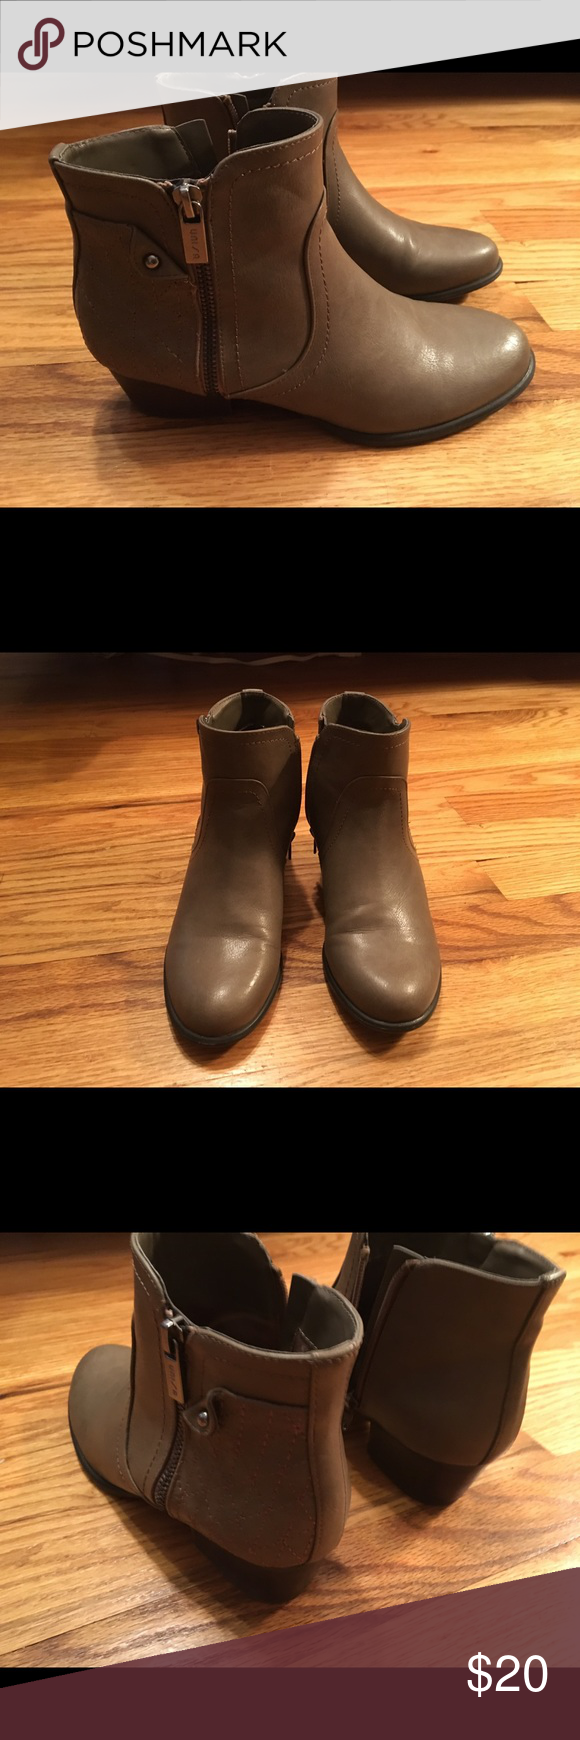 Fall Sale! Taupe booties with quilting detail Booties with pewter hardware.  Only worn a few times.  Great condition! Unisa Shoes Ankle Boots & Booties